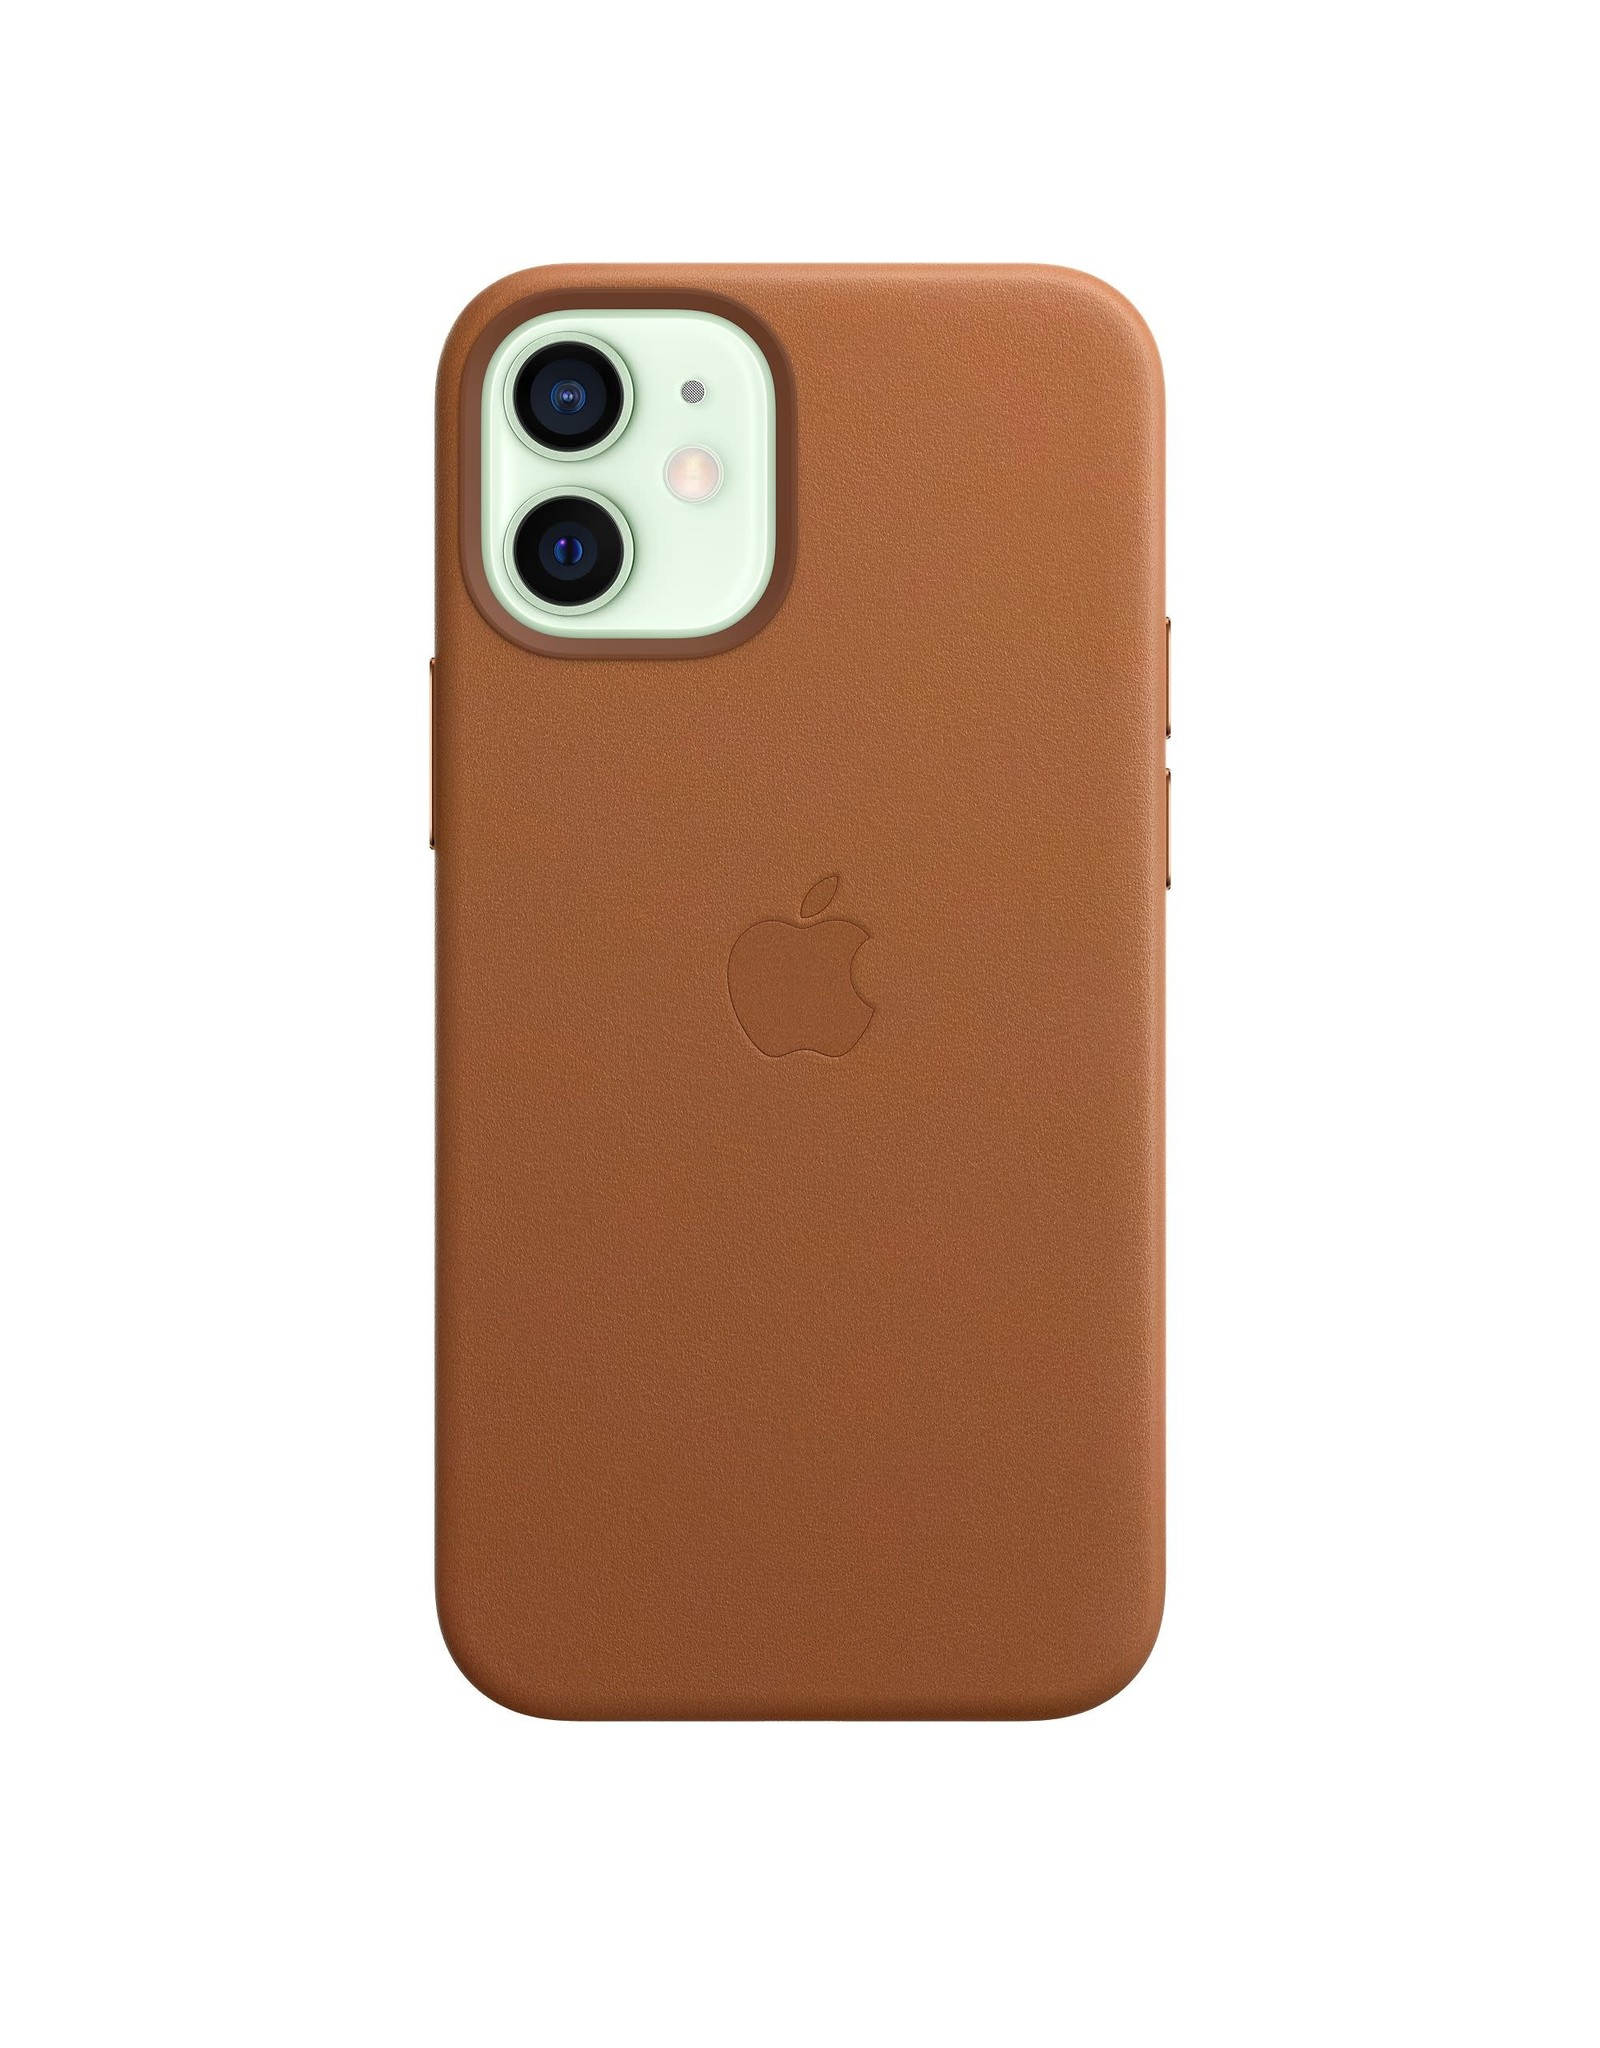 Apple Apple iPhone 12 mini Leather Case with MagSafe — Saddle Brown